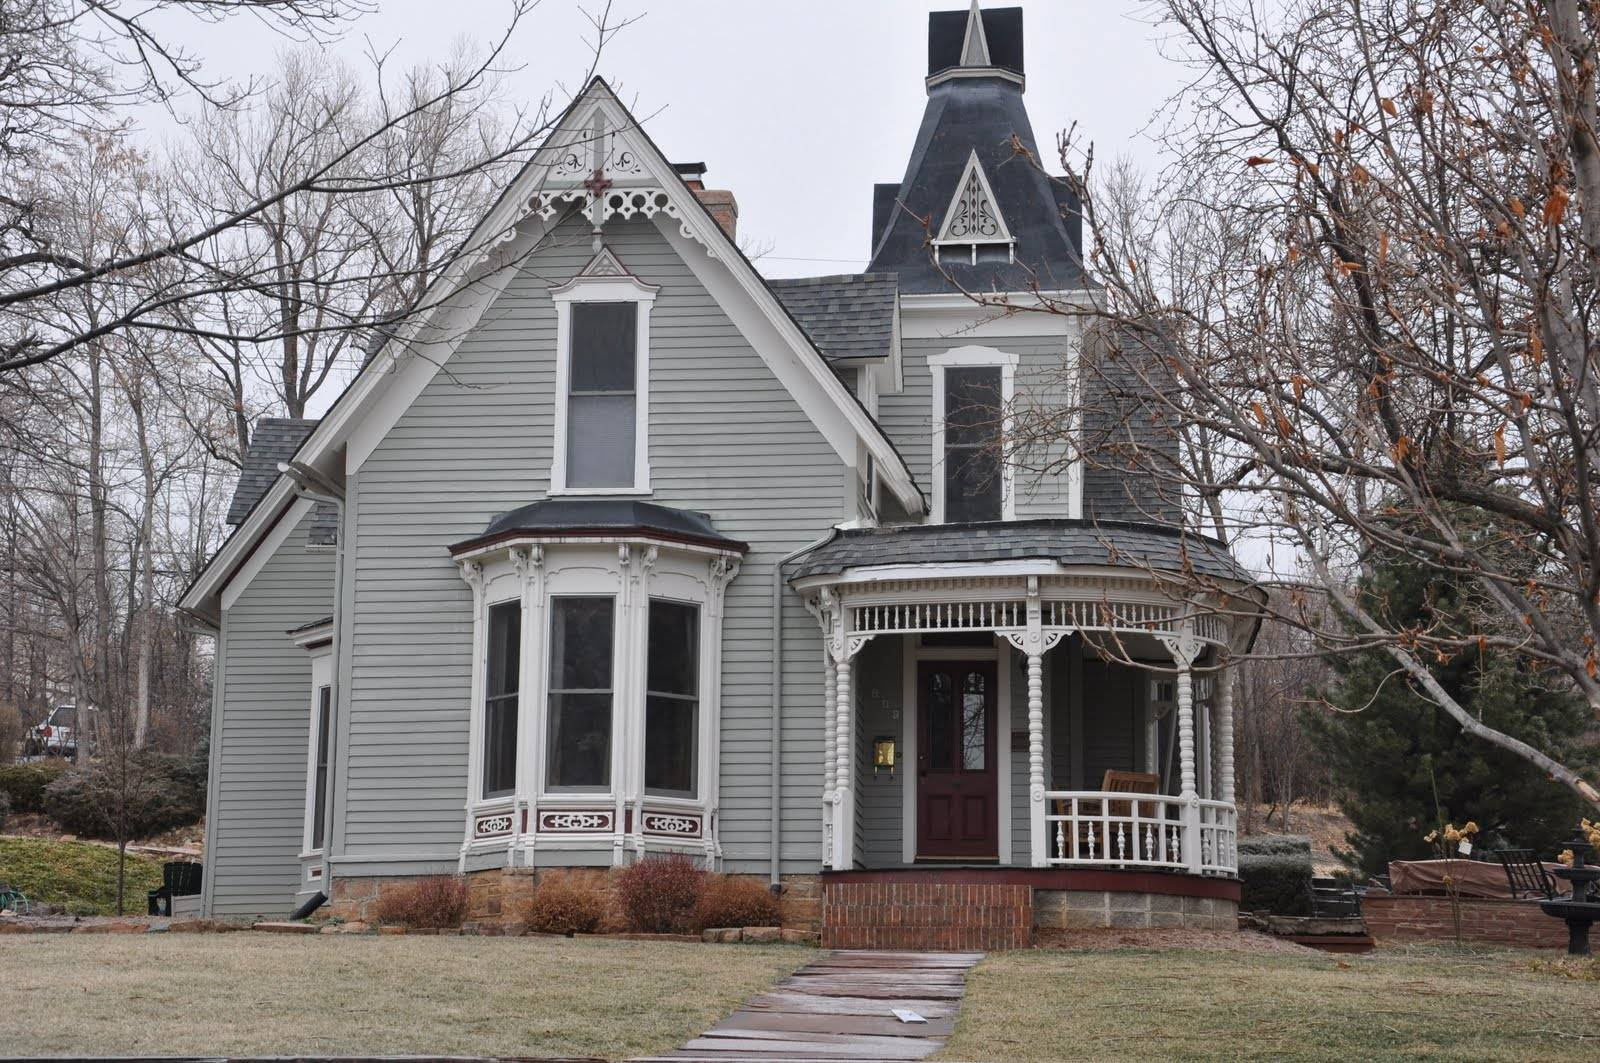 Being Boulder Victorian Architecture Queen Anne King Edward